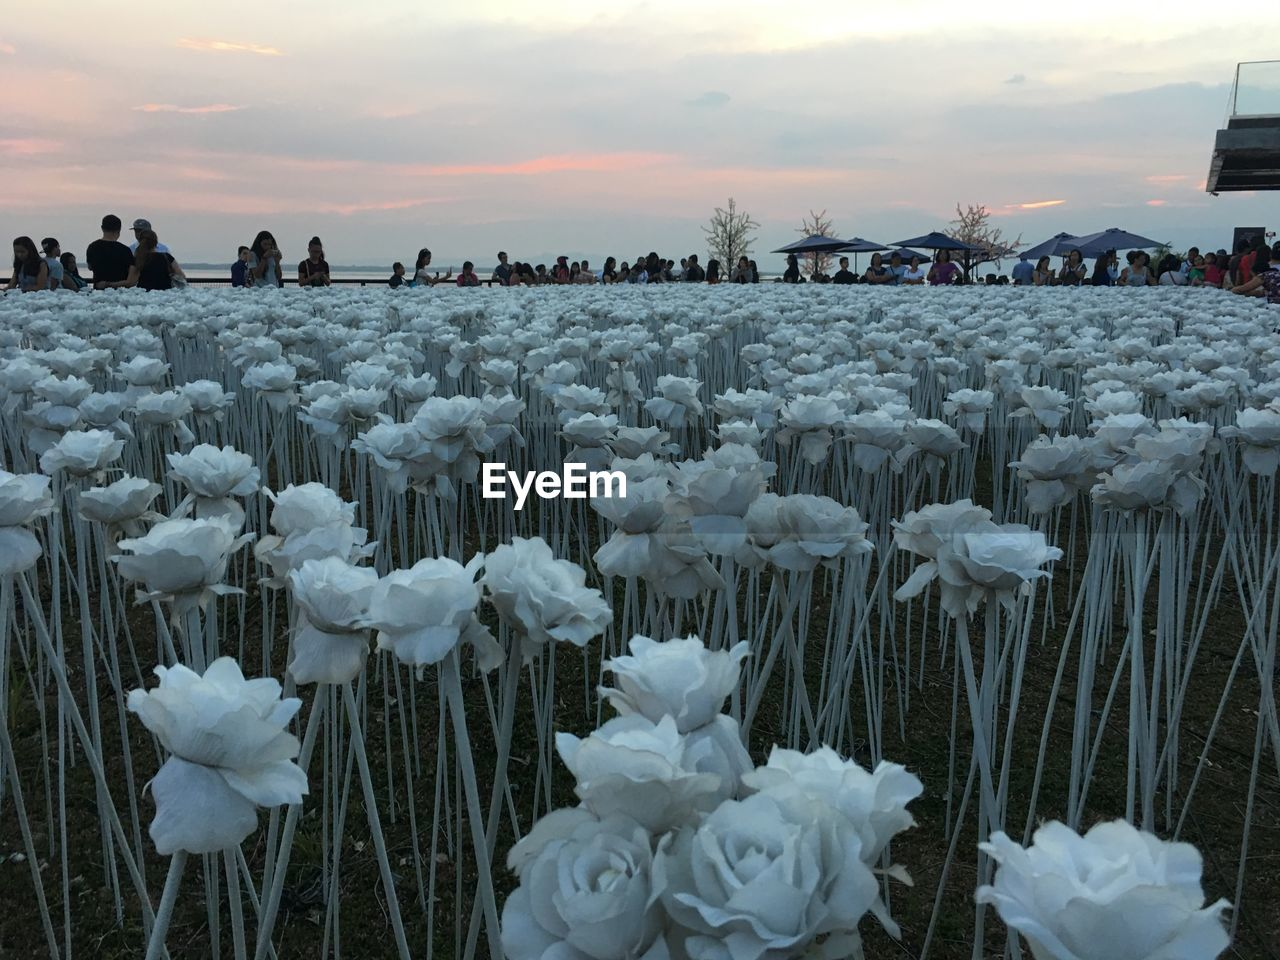 flower, nature, sunset, sky, beauty in nature, plant, flowering plant, vulnerability, fragility, cloud - sky, abundance, no people, land, white color, freshness, outdoors, close-up, day, field, growth, flower head